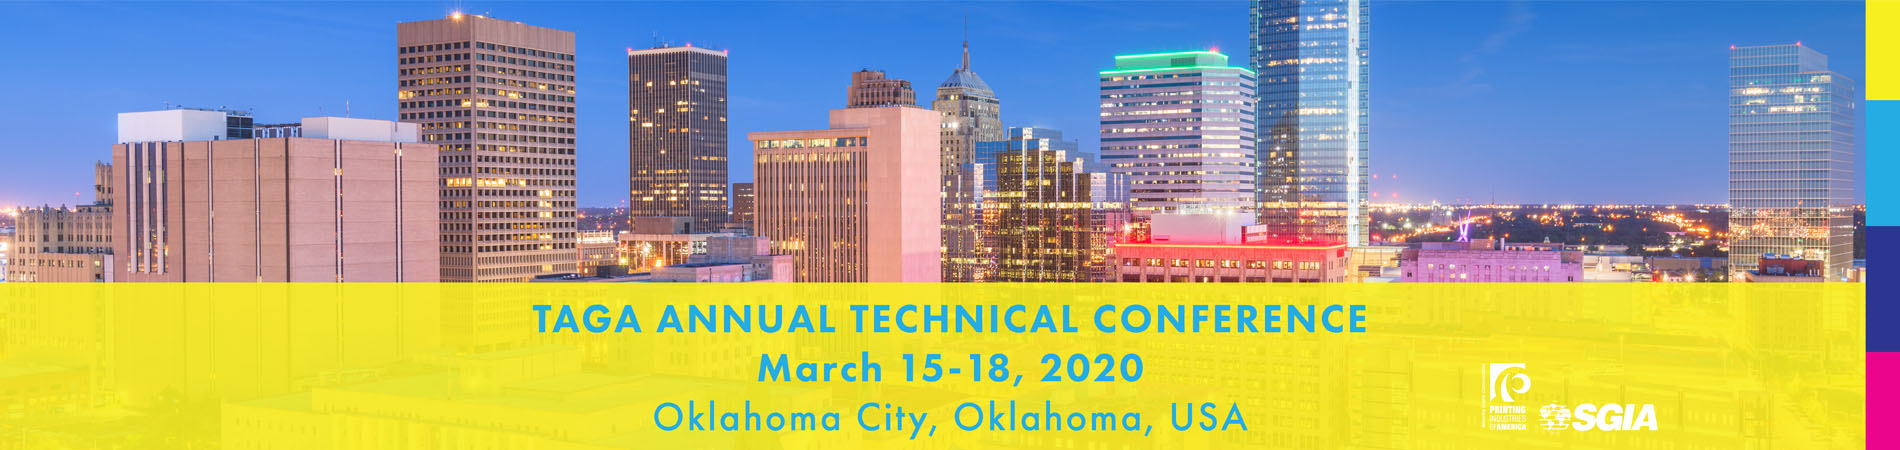 2020 Annual Technical Conference